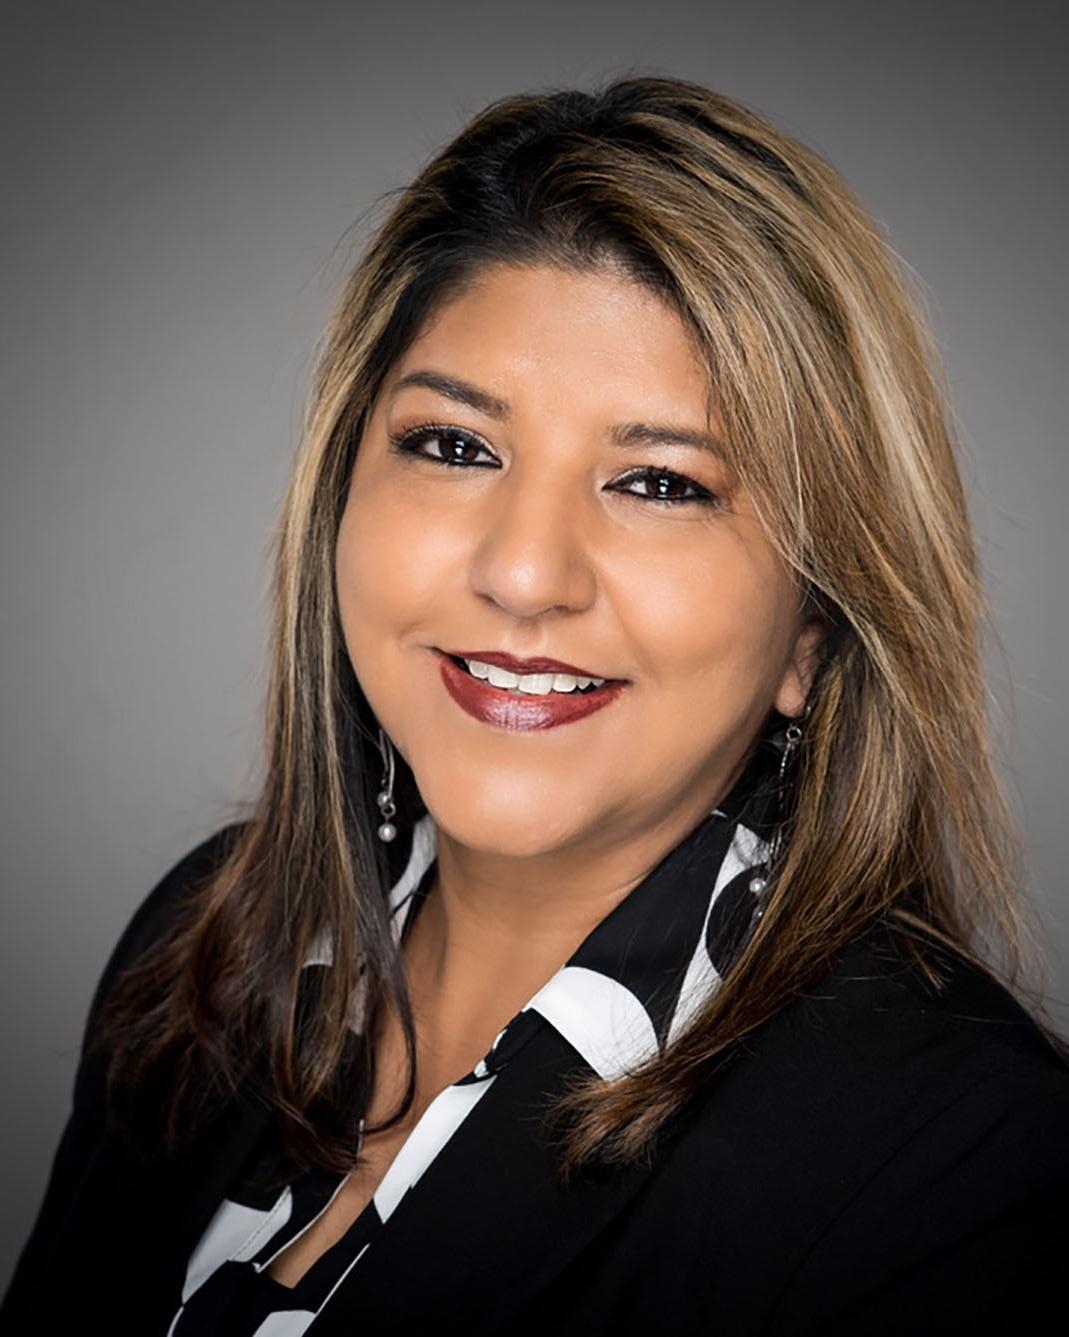 Marcella MartinezLeasing Specialist - Ms. Martinez is a friendly, well-connected professional; she markets, promotes and sells L2OA properties and helps renters move toward an ethical, legal and transparent pathway to home ownership. She is a valued bilingual linguist